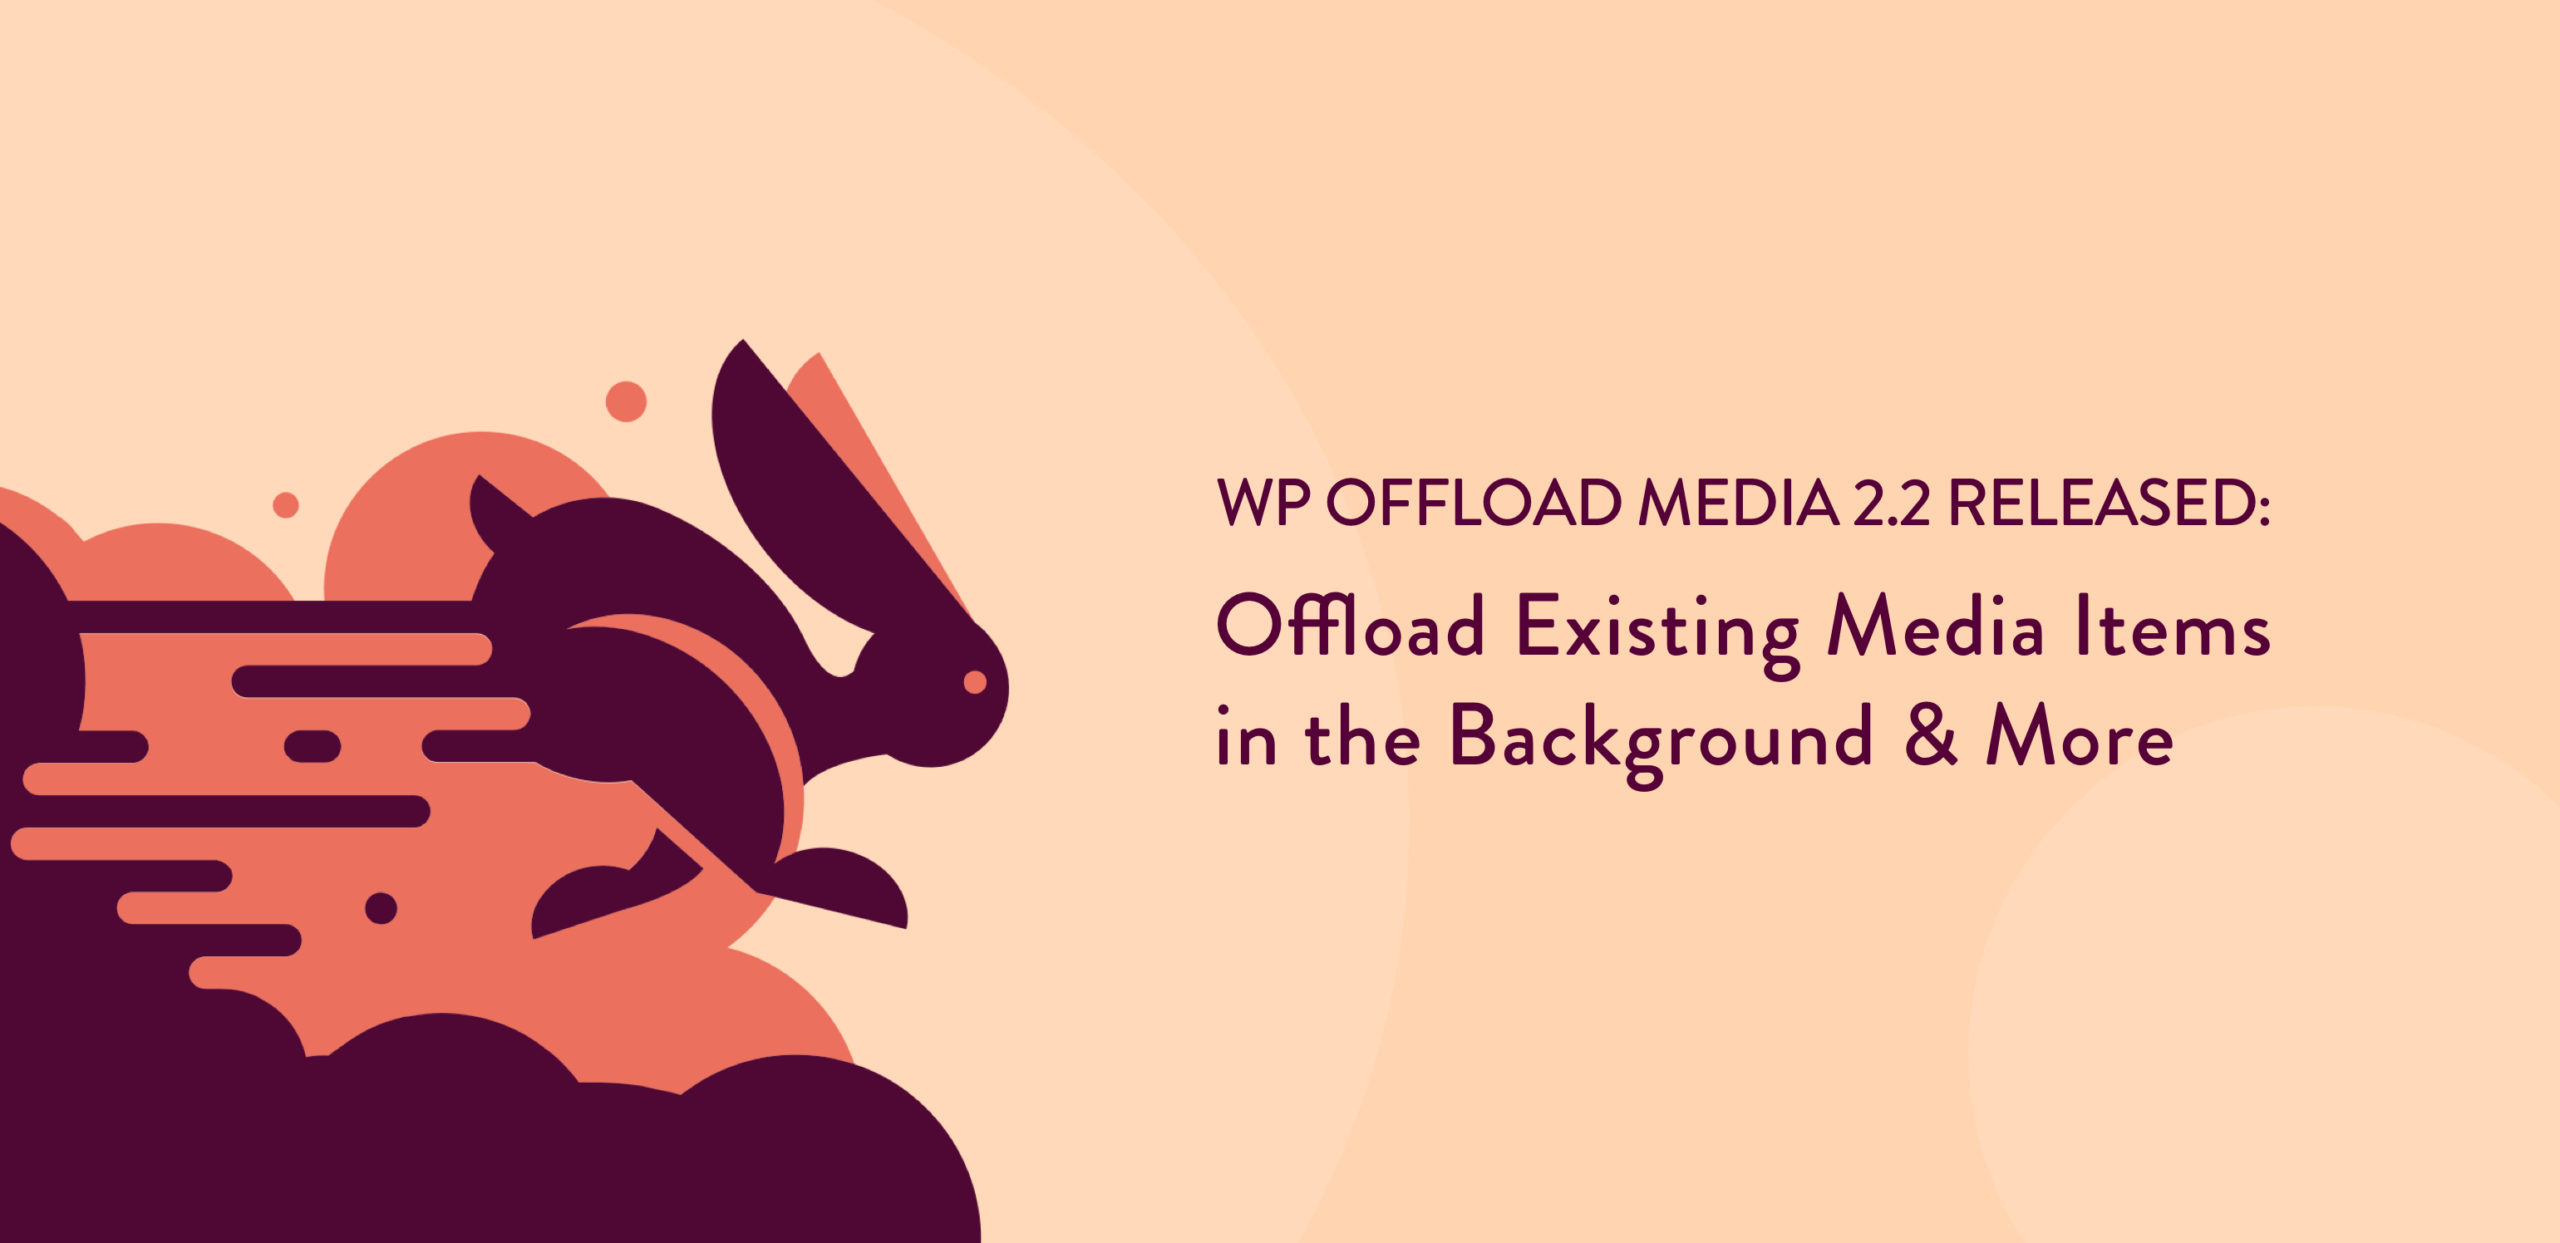 WP Offload Media 2.2 release post banner